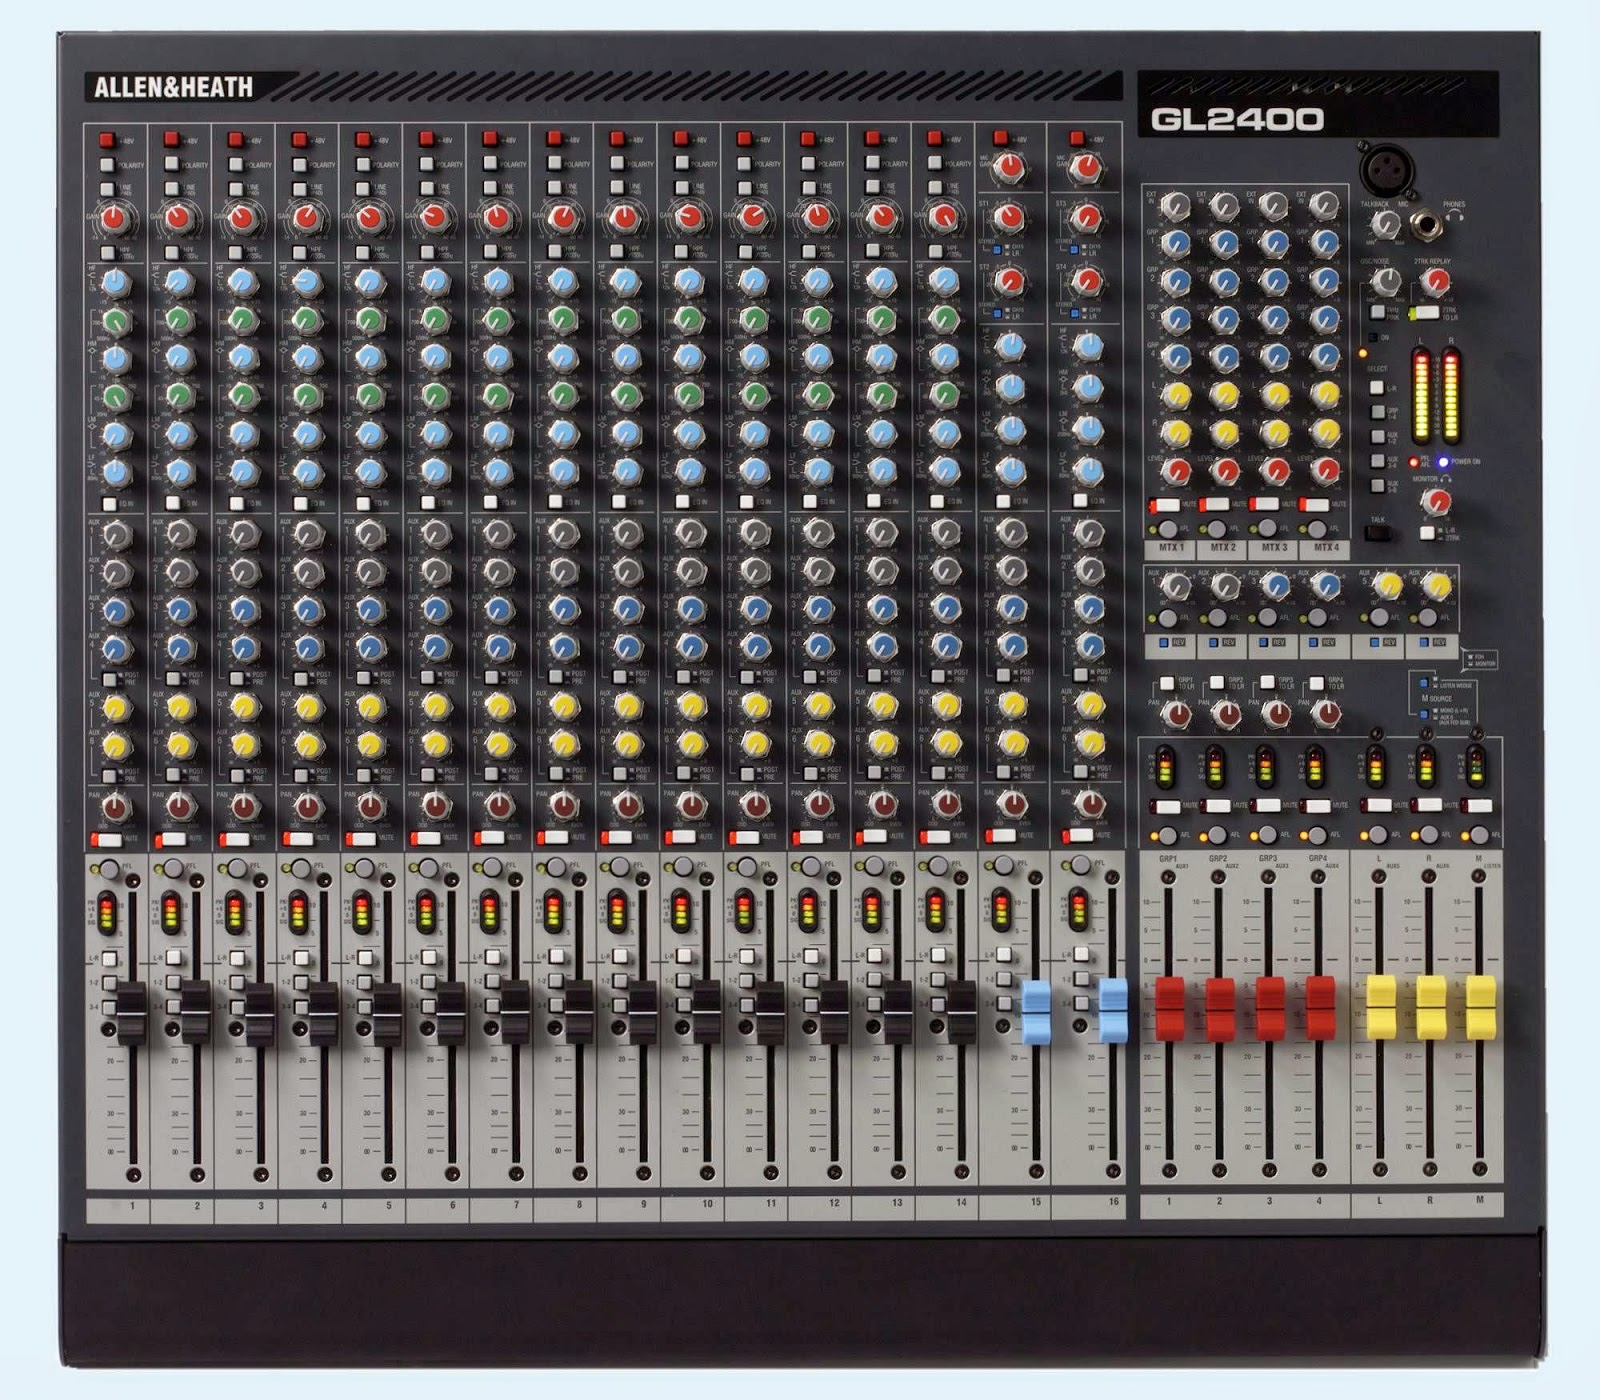 SPEC MIXER ALLEN HEATH GL2400